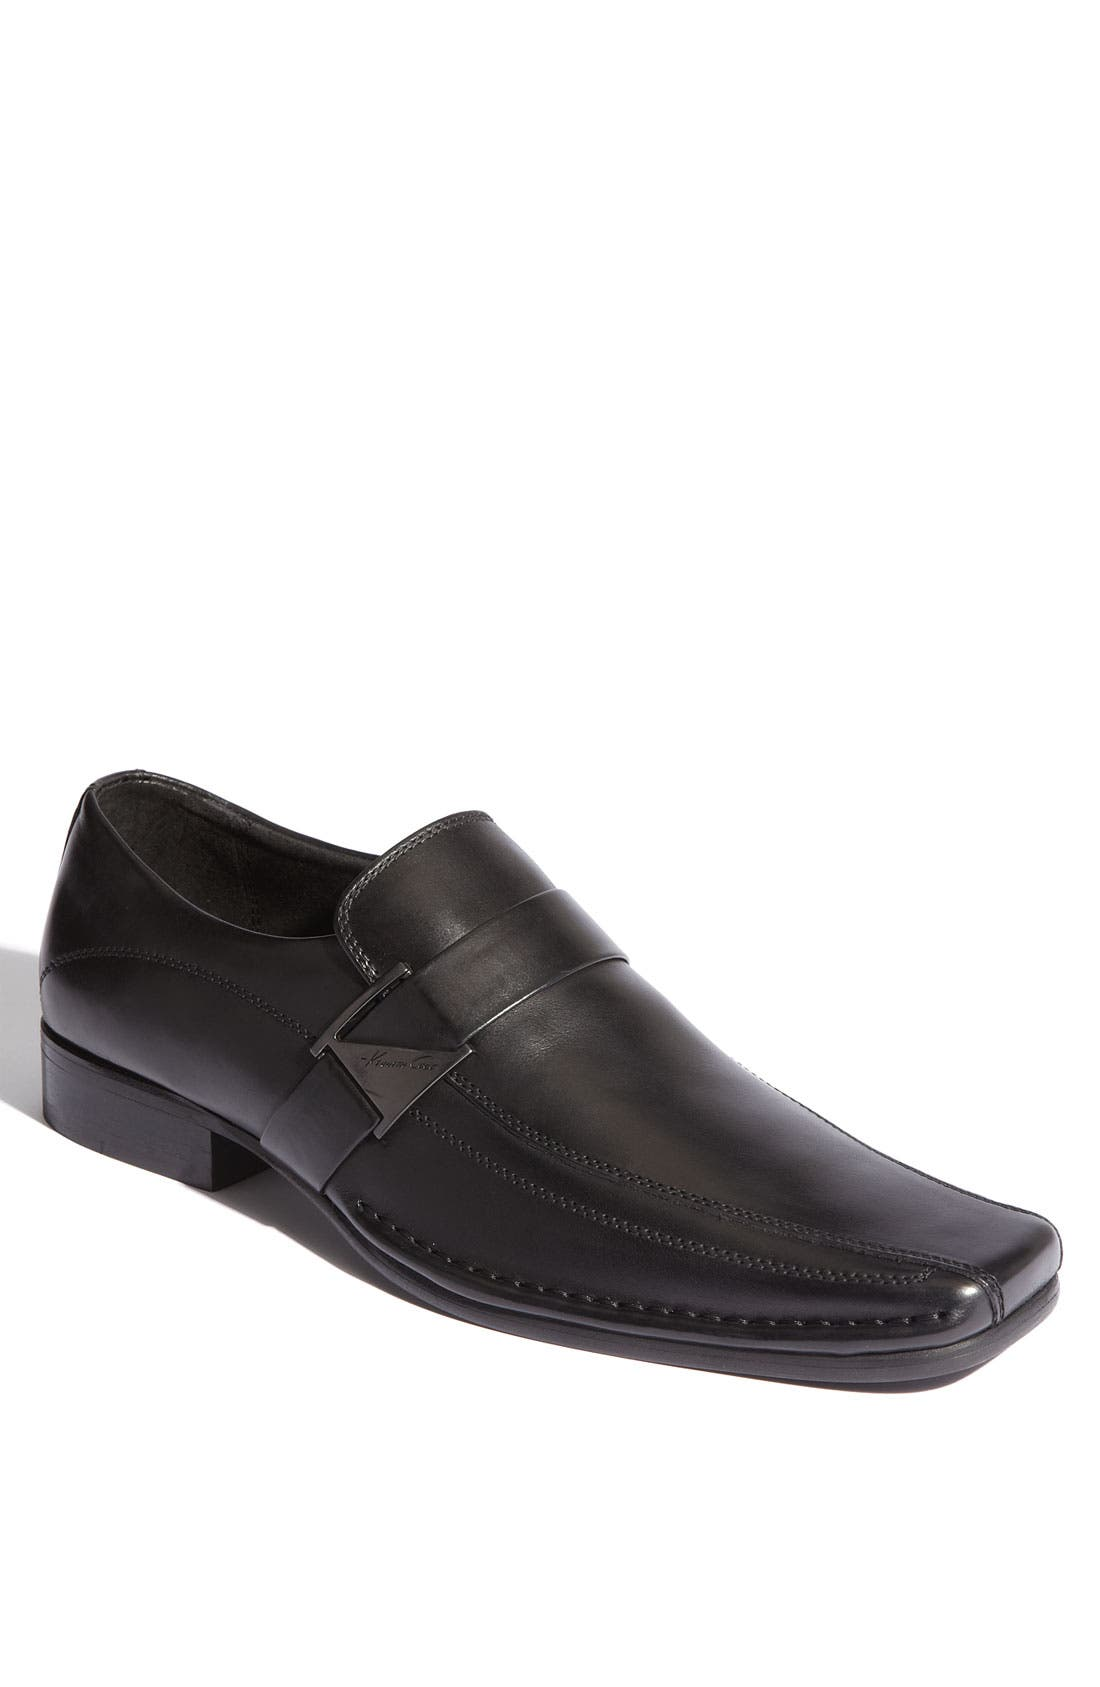 Main Image - Kenneth Cole New York 'Run Around' Slip-On